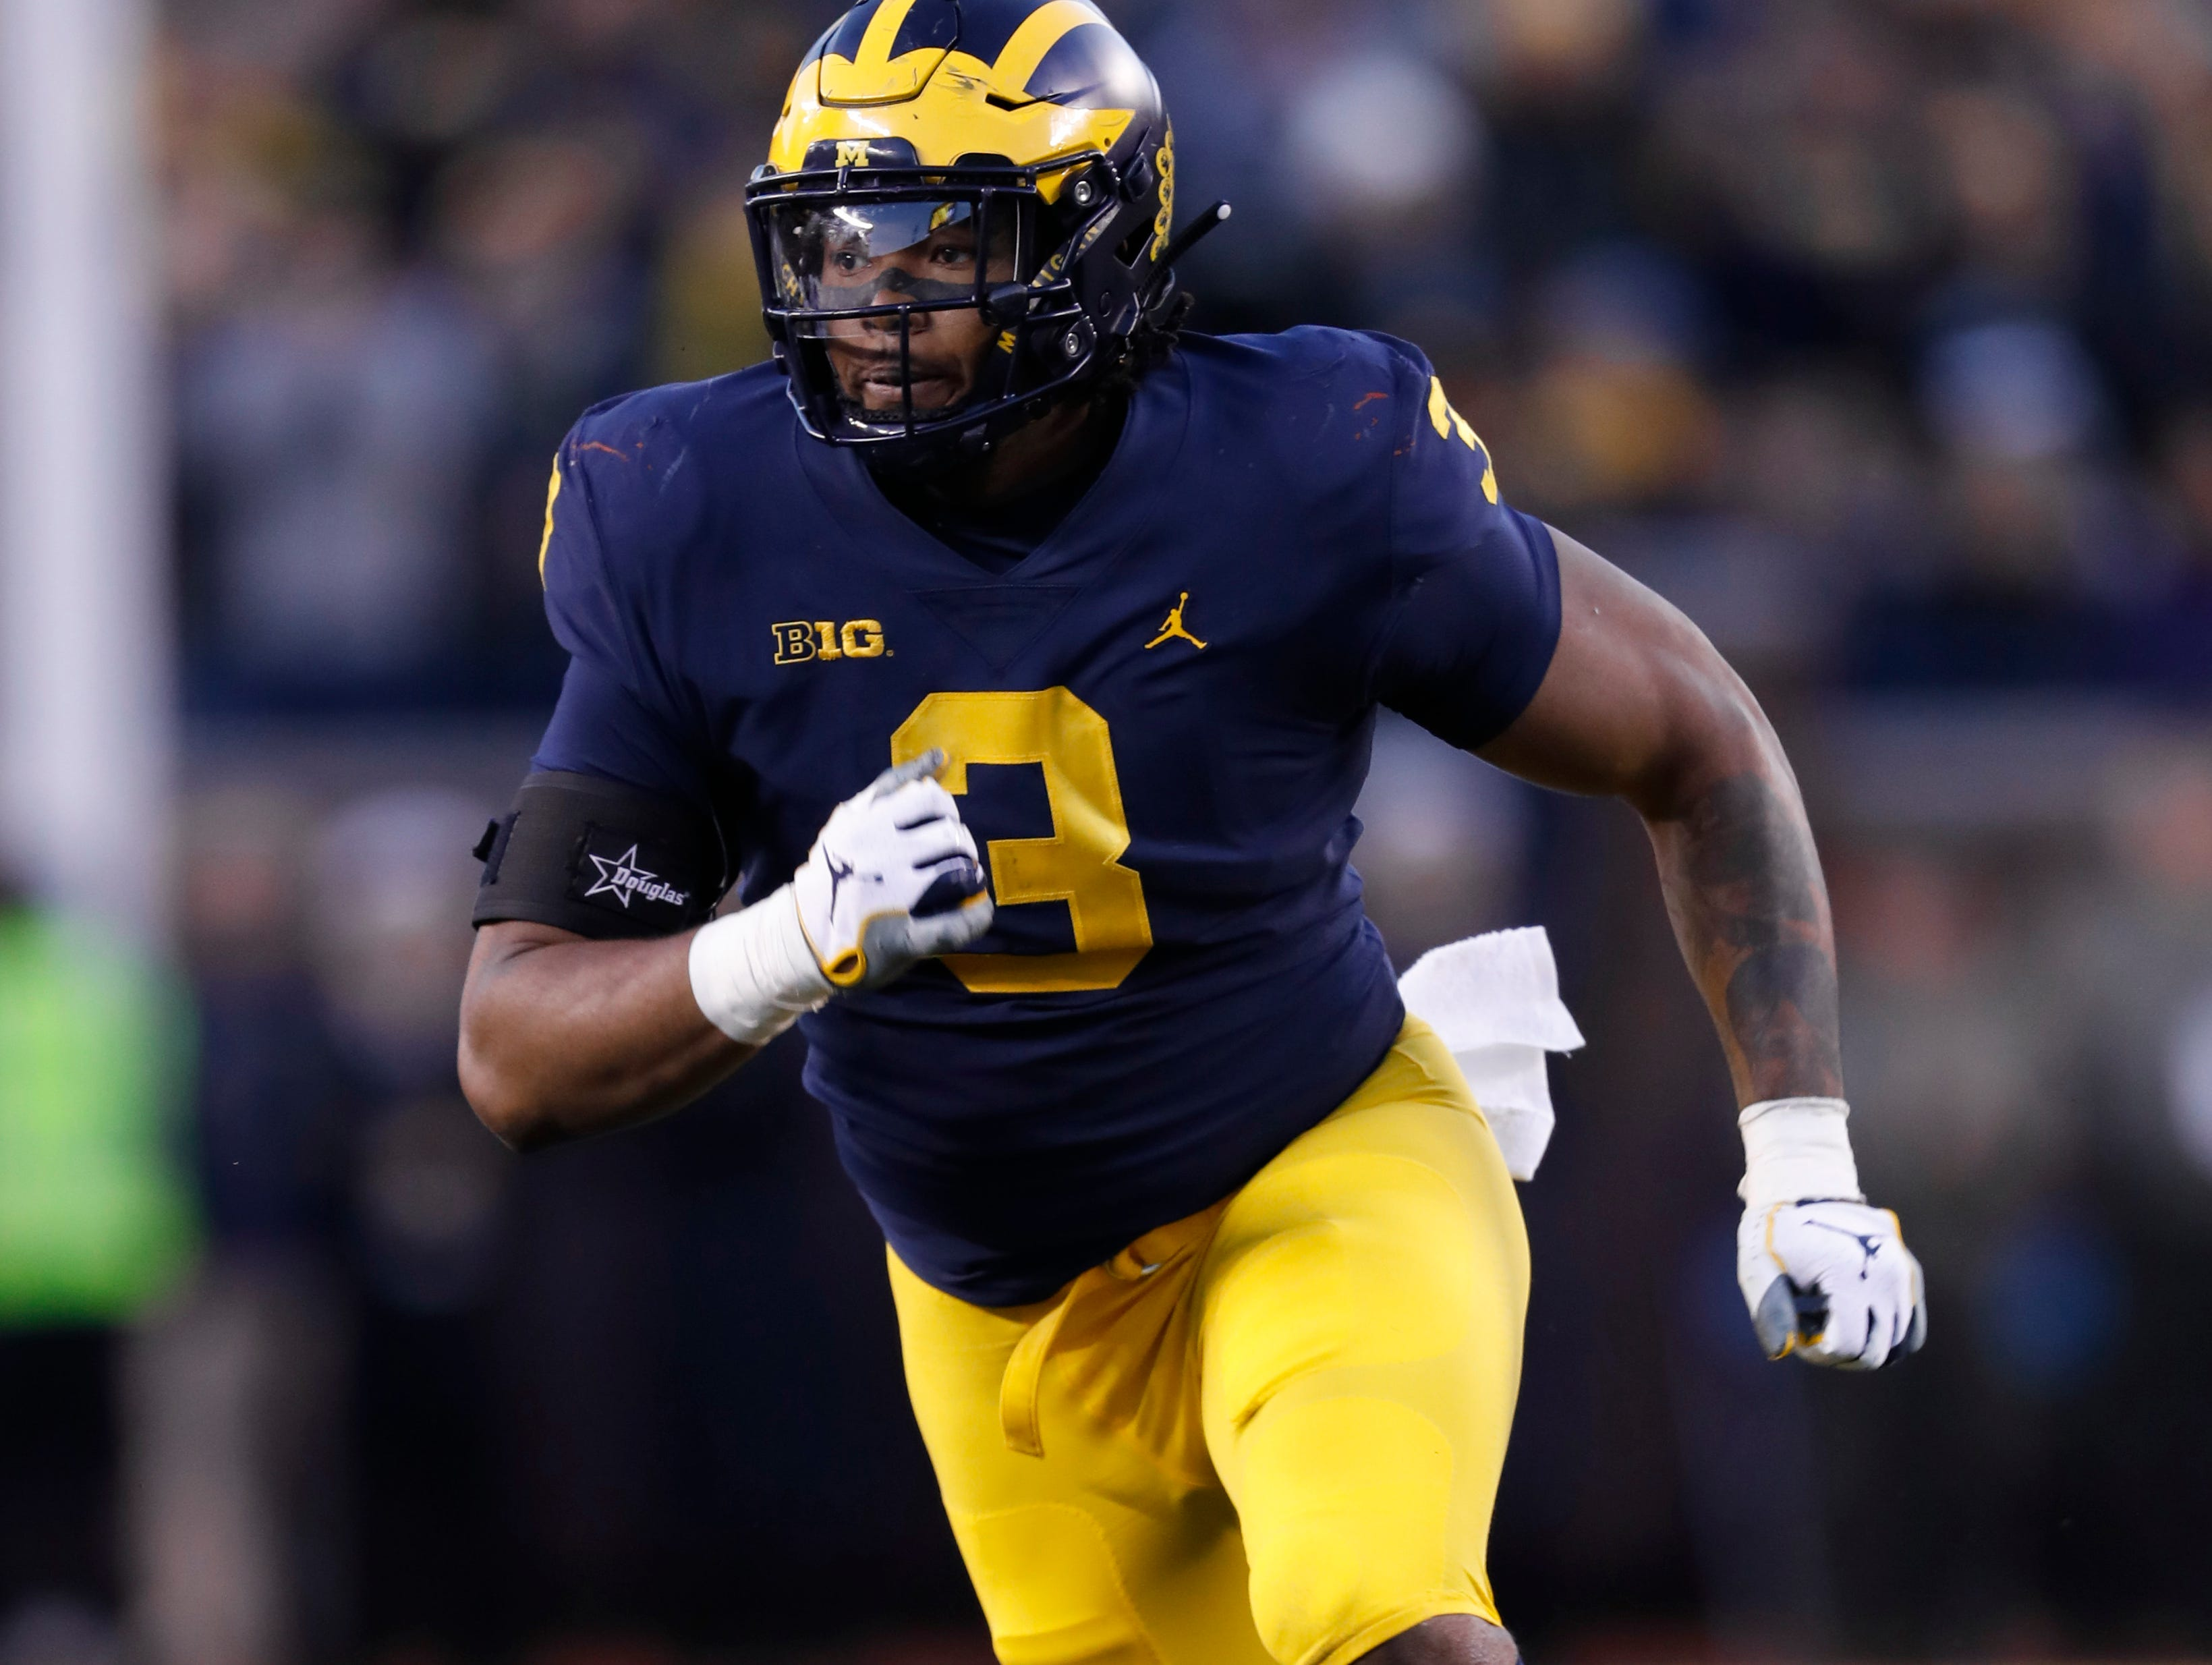 Michigan defensive lineman Rashan Gary plays against Penn State in the second half of an NCAA college football game in Ann Arbor, Mich., Saturday, Nov. 3, 2018. (AP Photo/Paul Sancya)